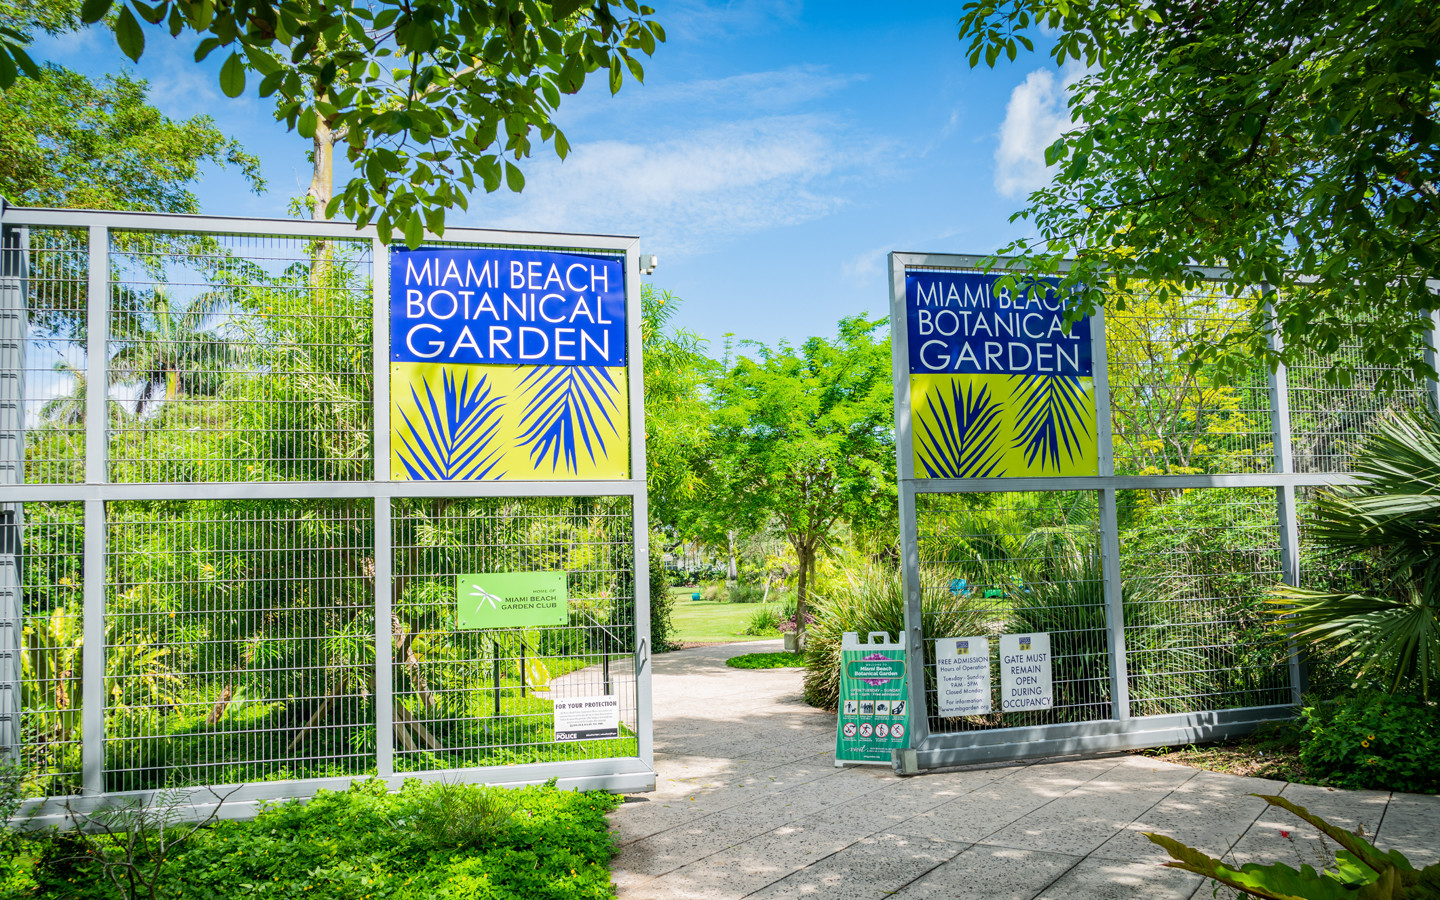 Miami Beach Botanical Garden Entrance